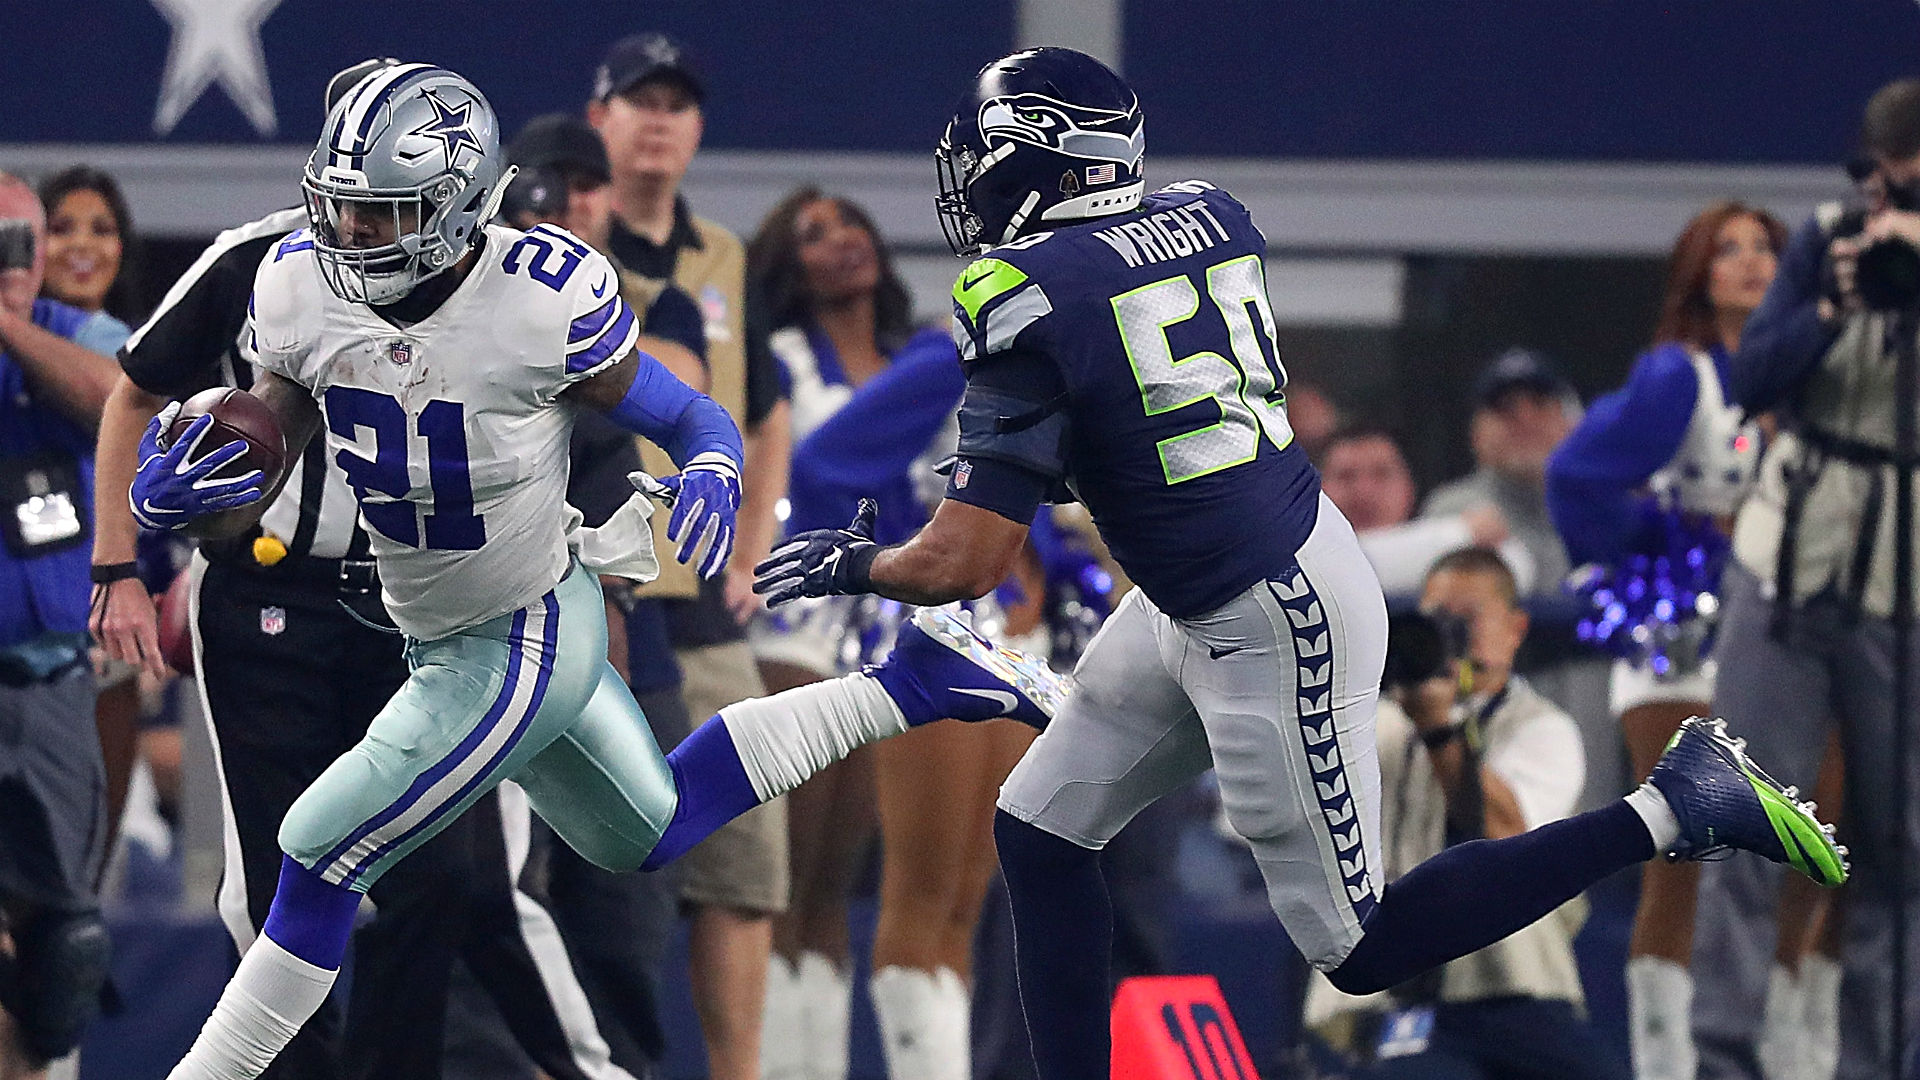 e3a3c41c Seahawks vs. Cowboys results: Score, highlights from Dallas' NFC ...